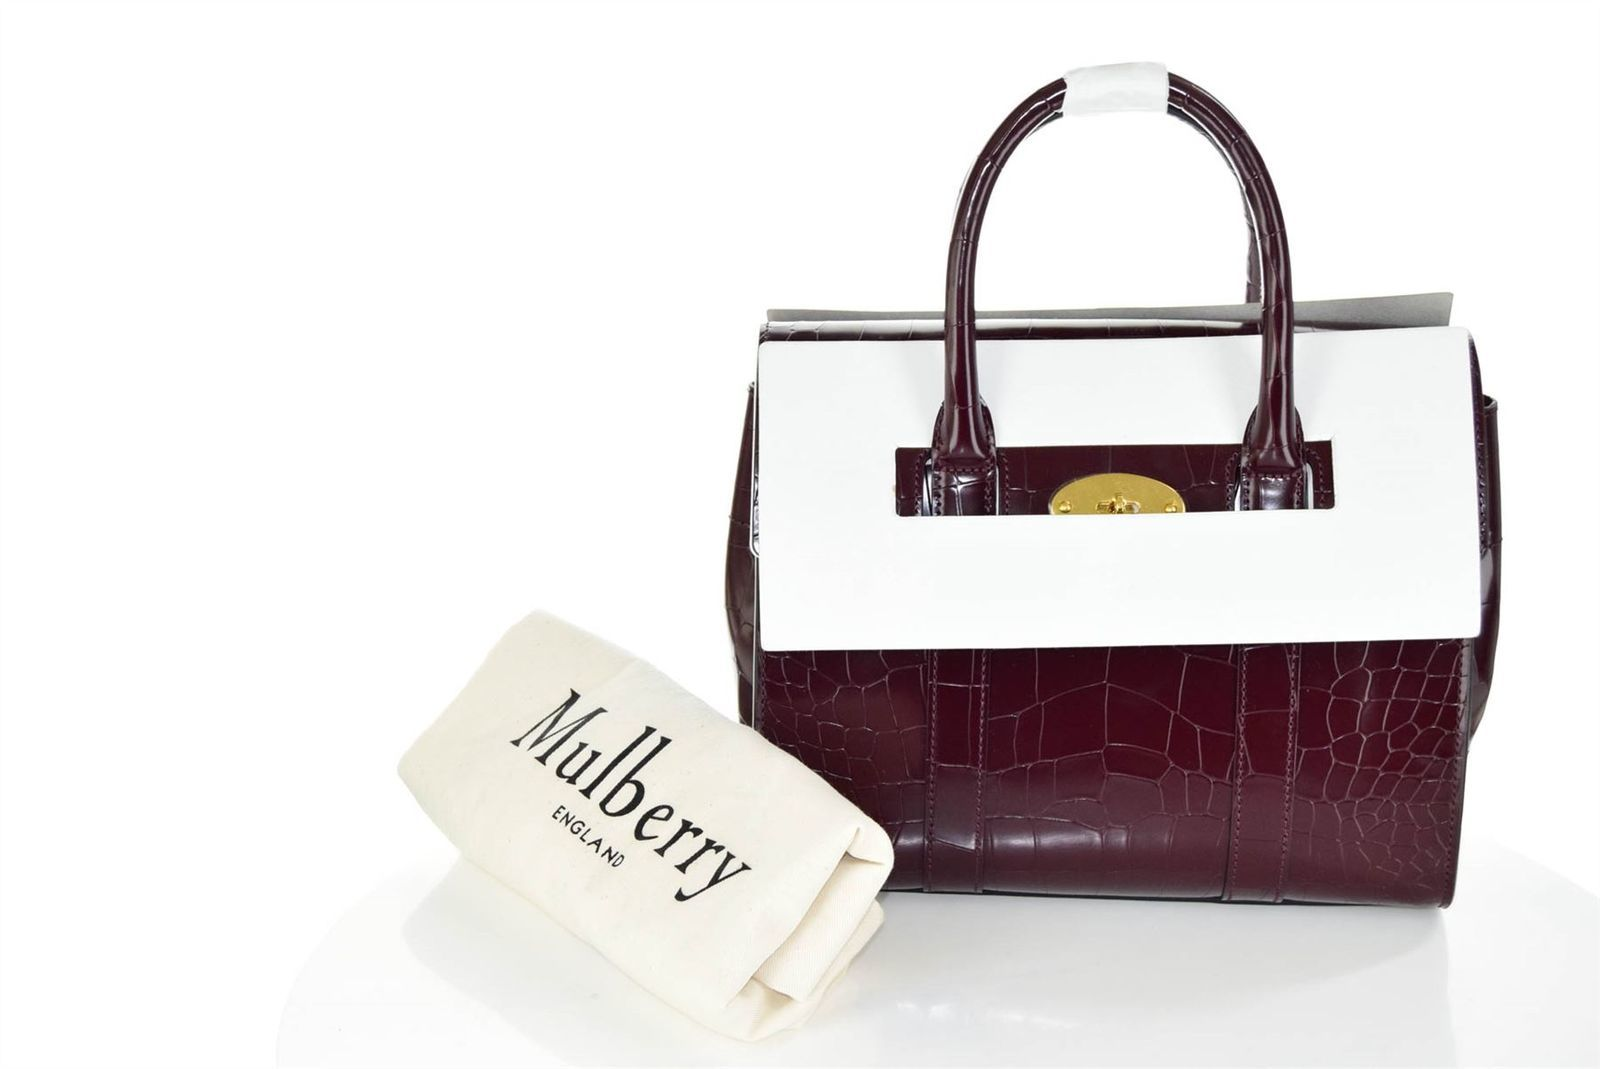 e0be8664b737 ... code for mulberry small bayswater oxblood sac en cuir bordeaux croc 8.5  x 10 x purchase authentic mulberry seth large messenger bag brown leather  ...